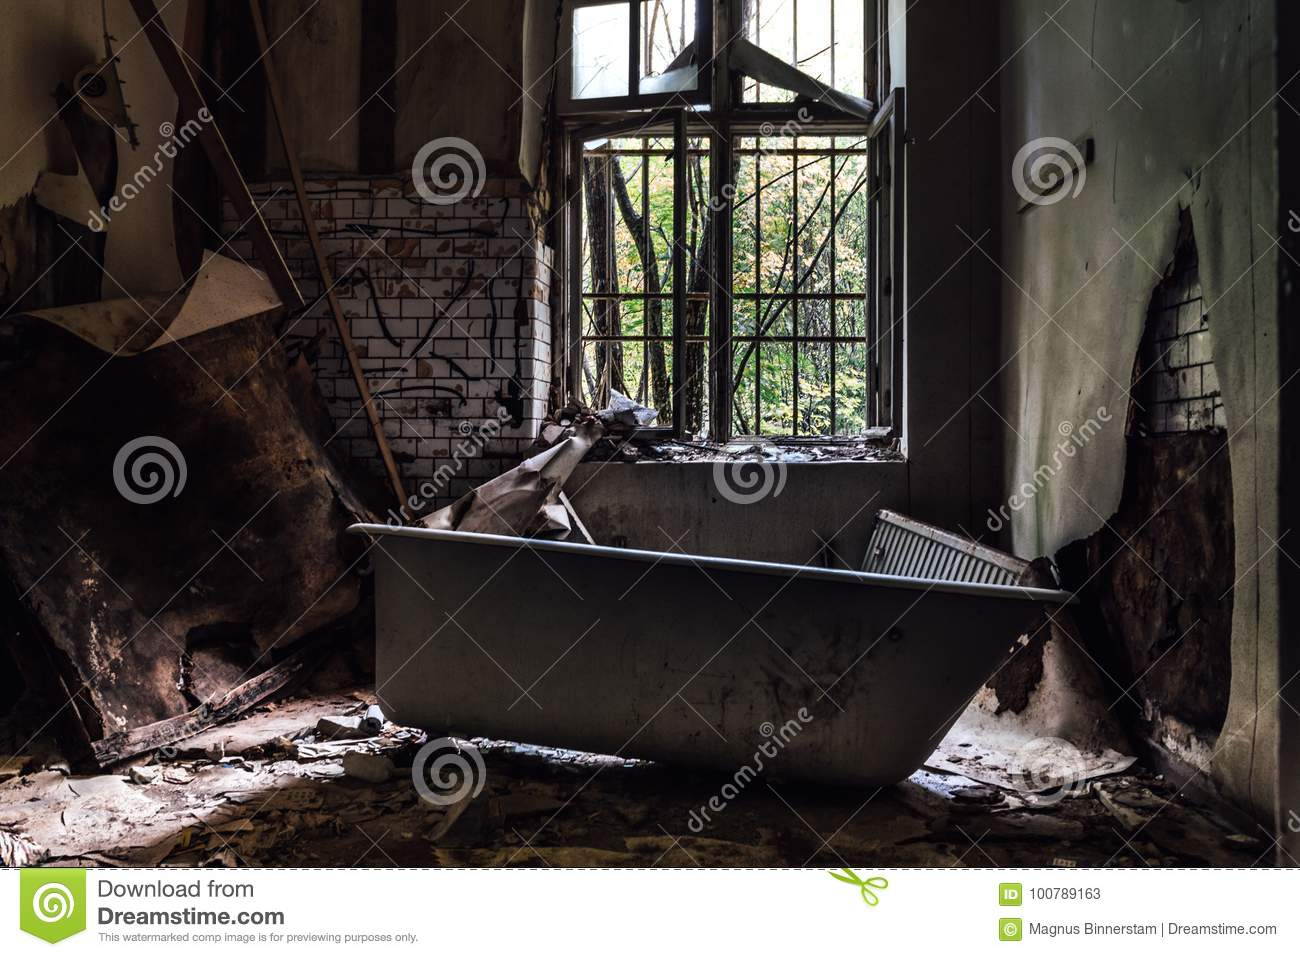 Old bathtub in a closed down mental institution in Säter Sweden